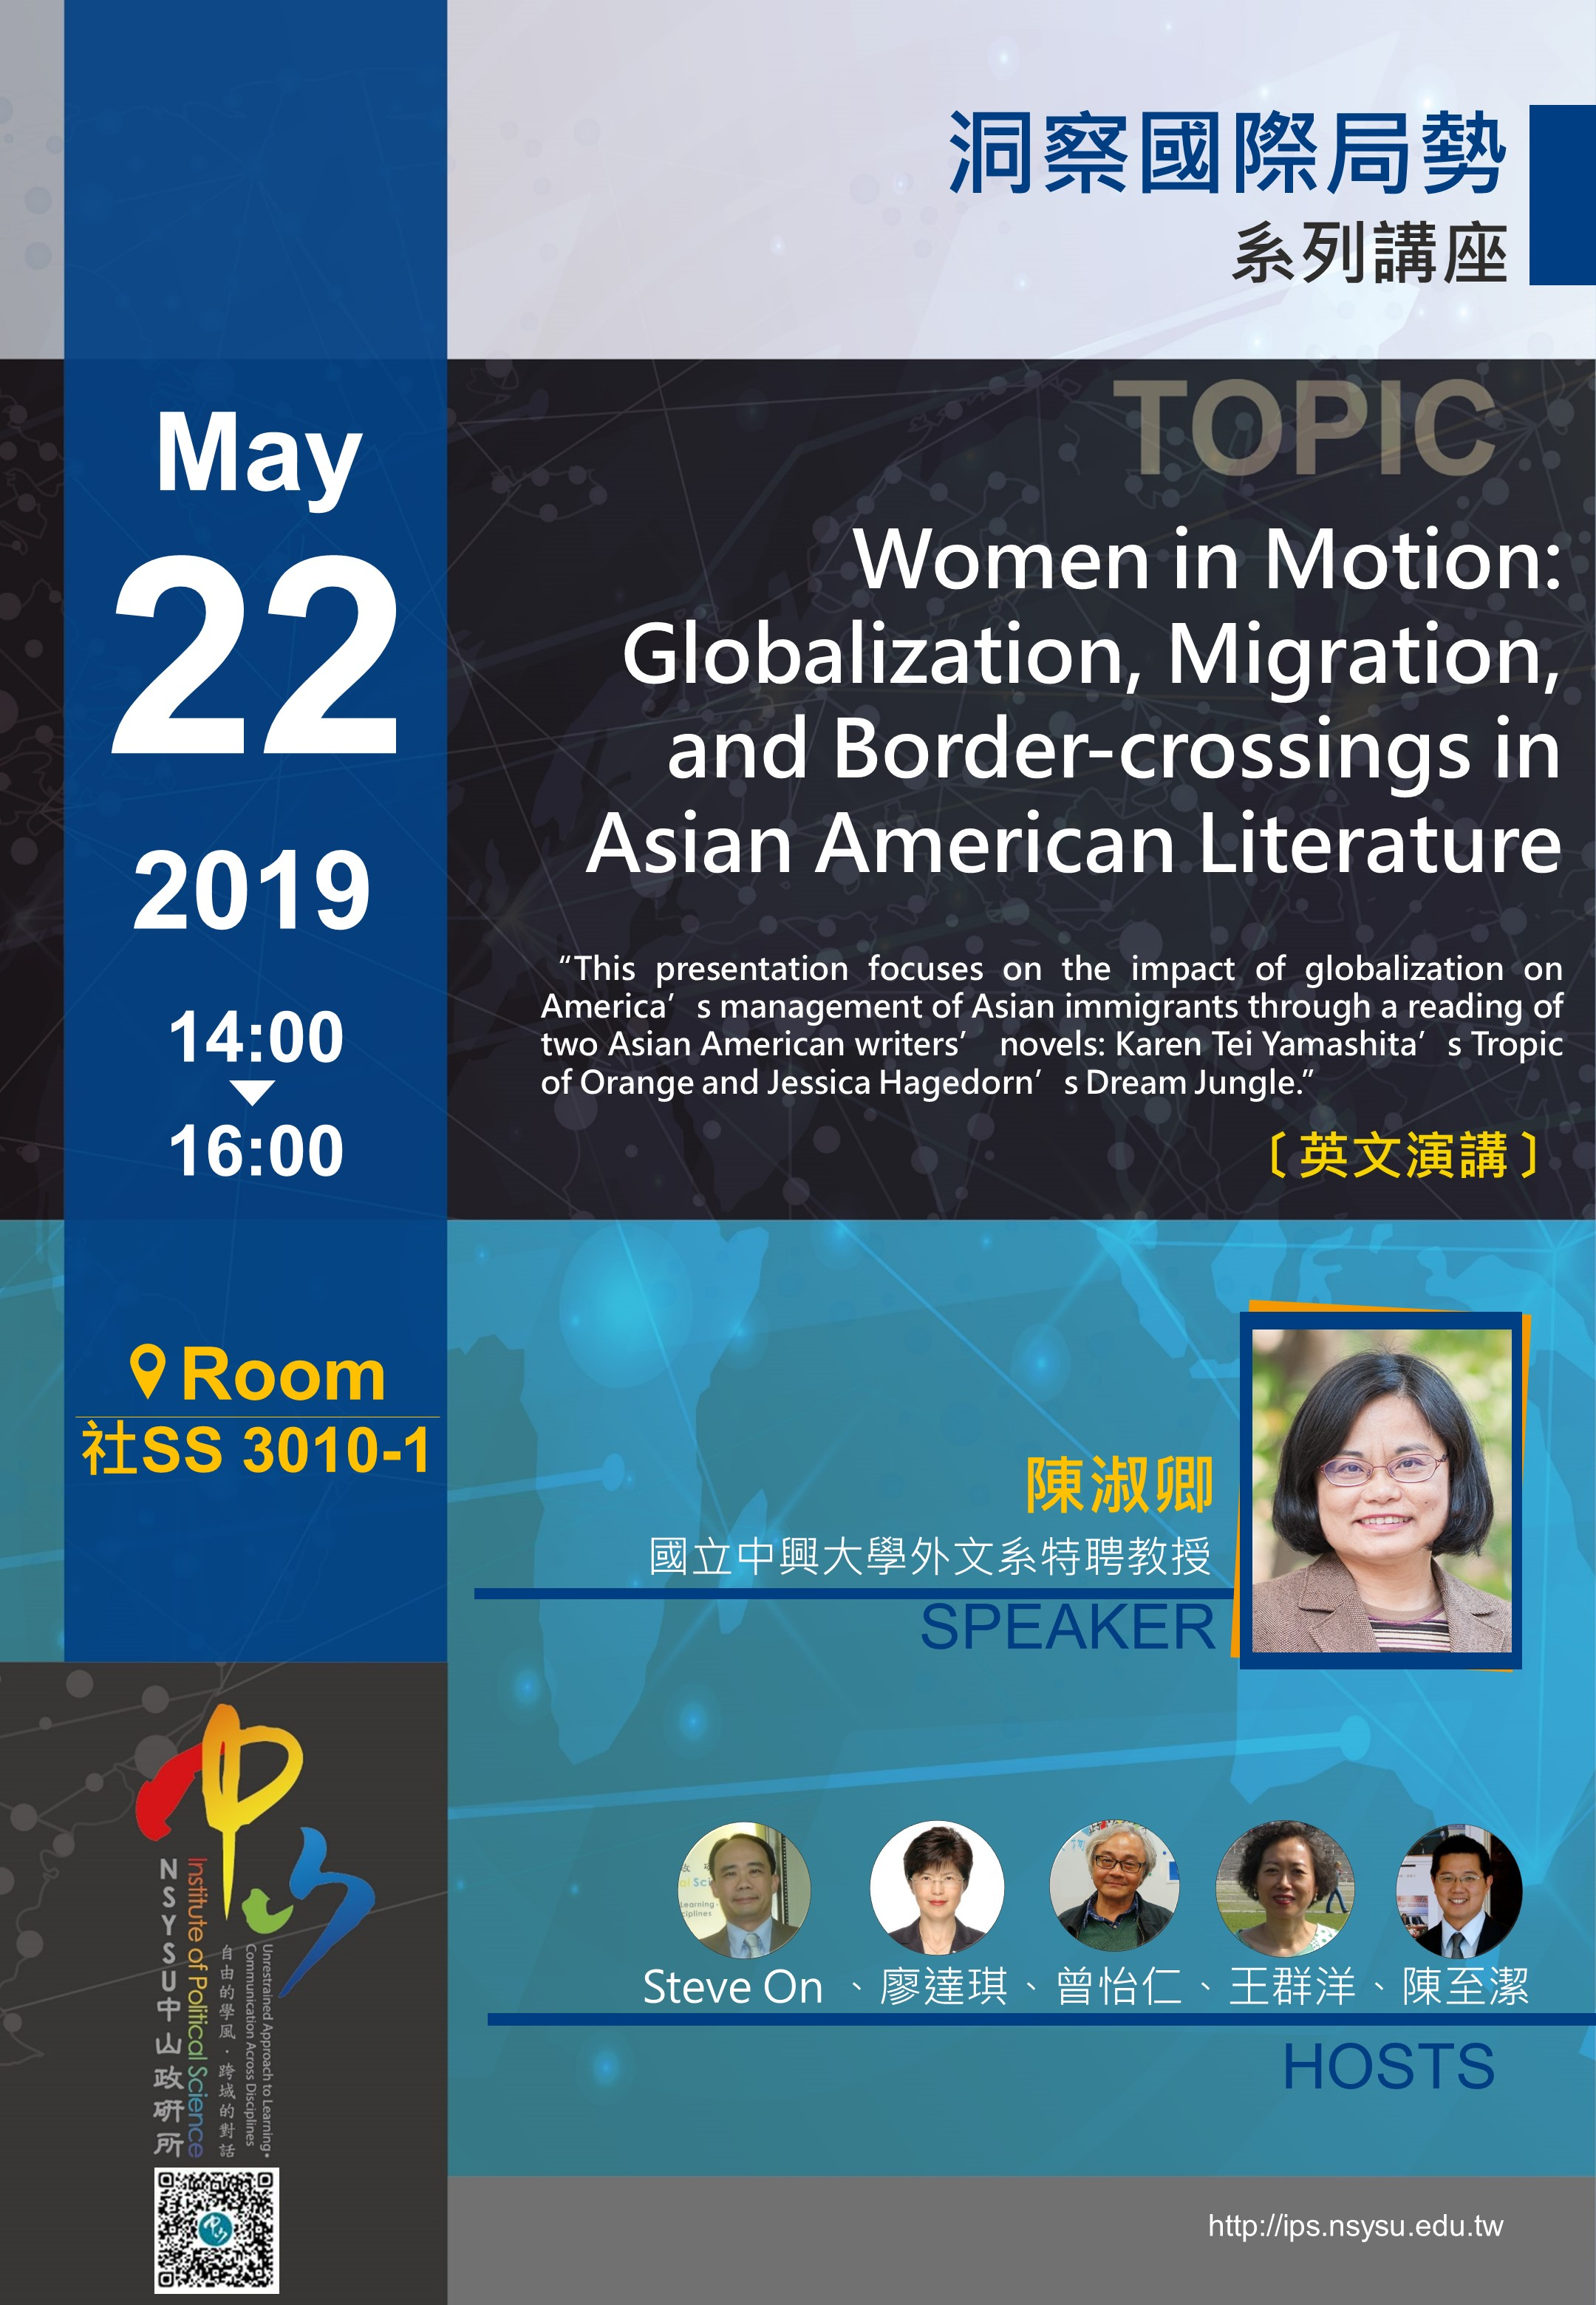 Women in Motion: Globalization, Migration, and Border-crossings in Asian American Literature